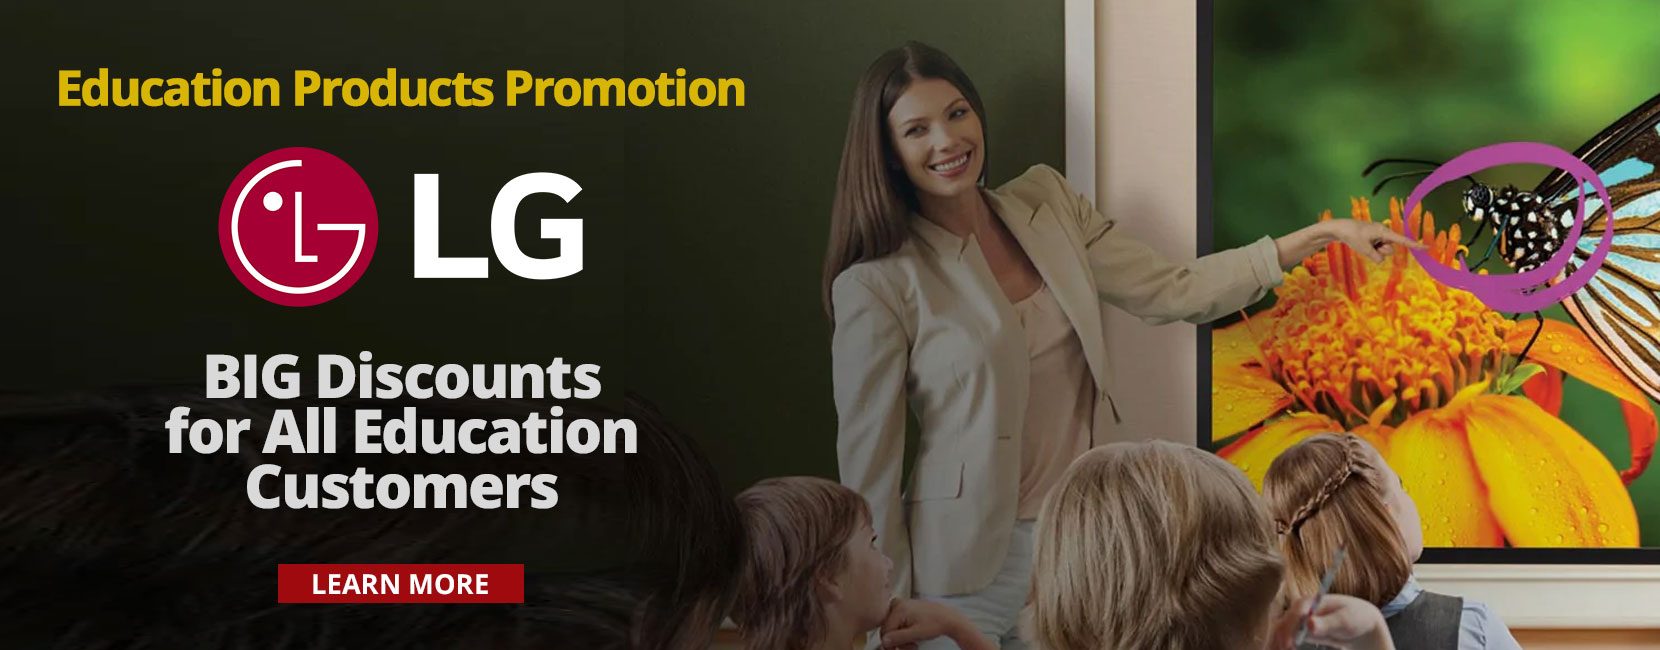 LG Education Promotion